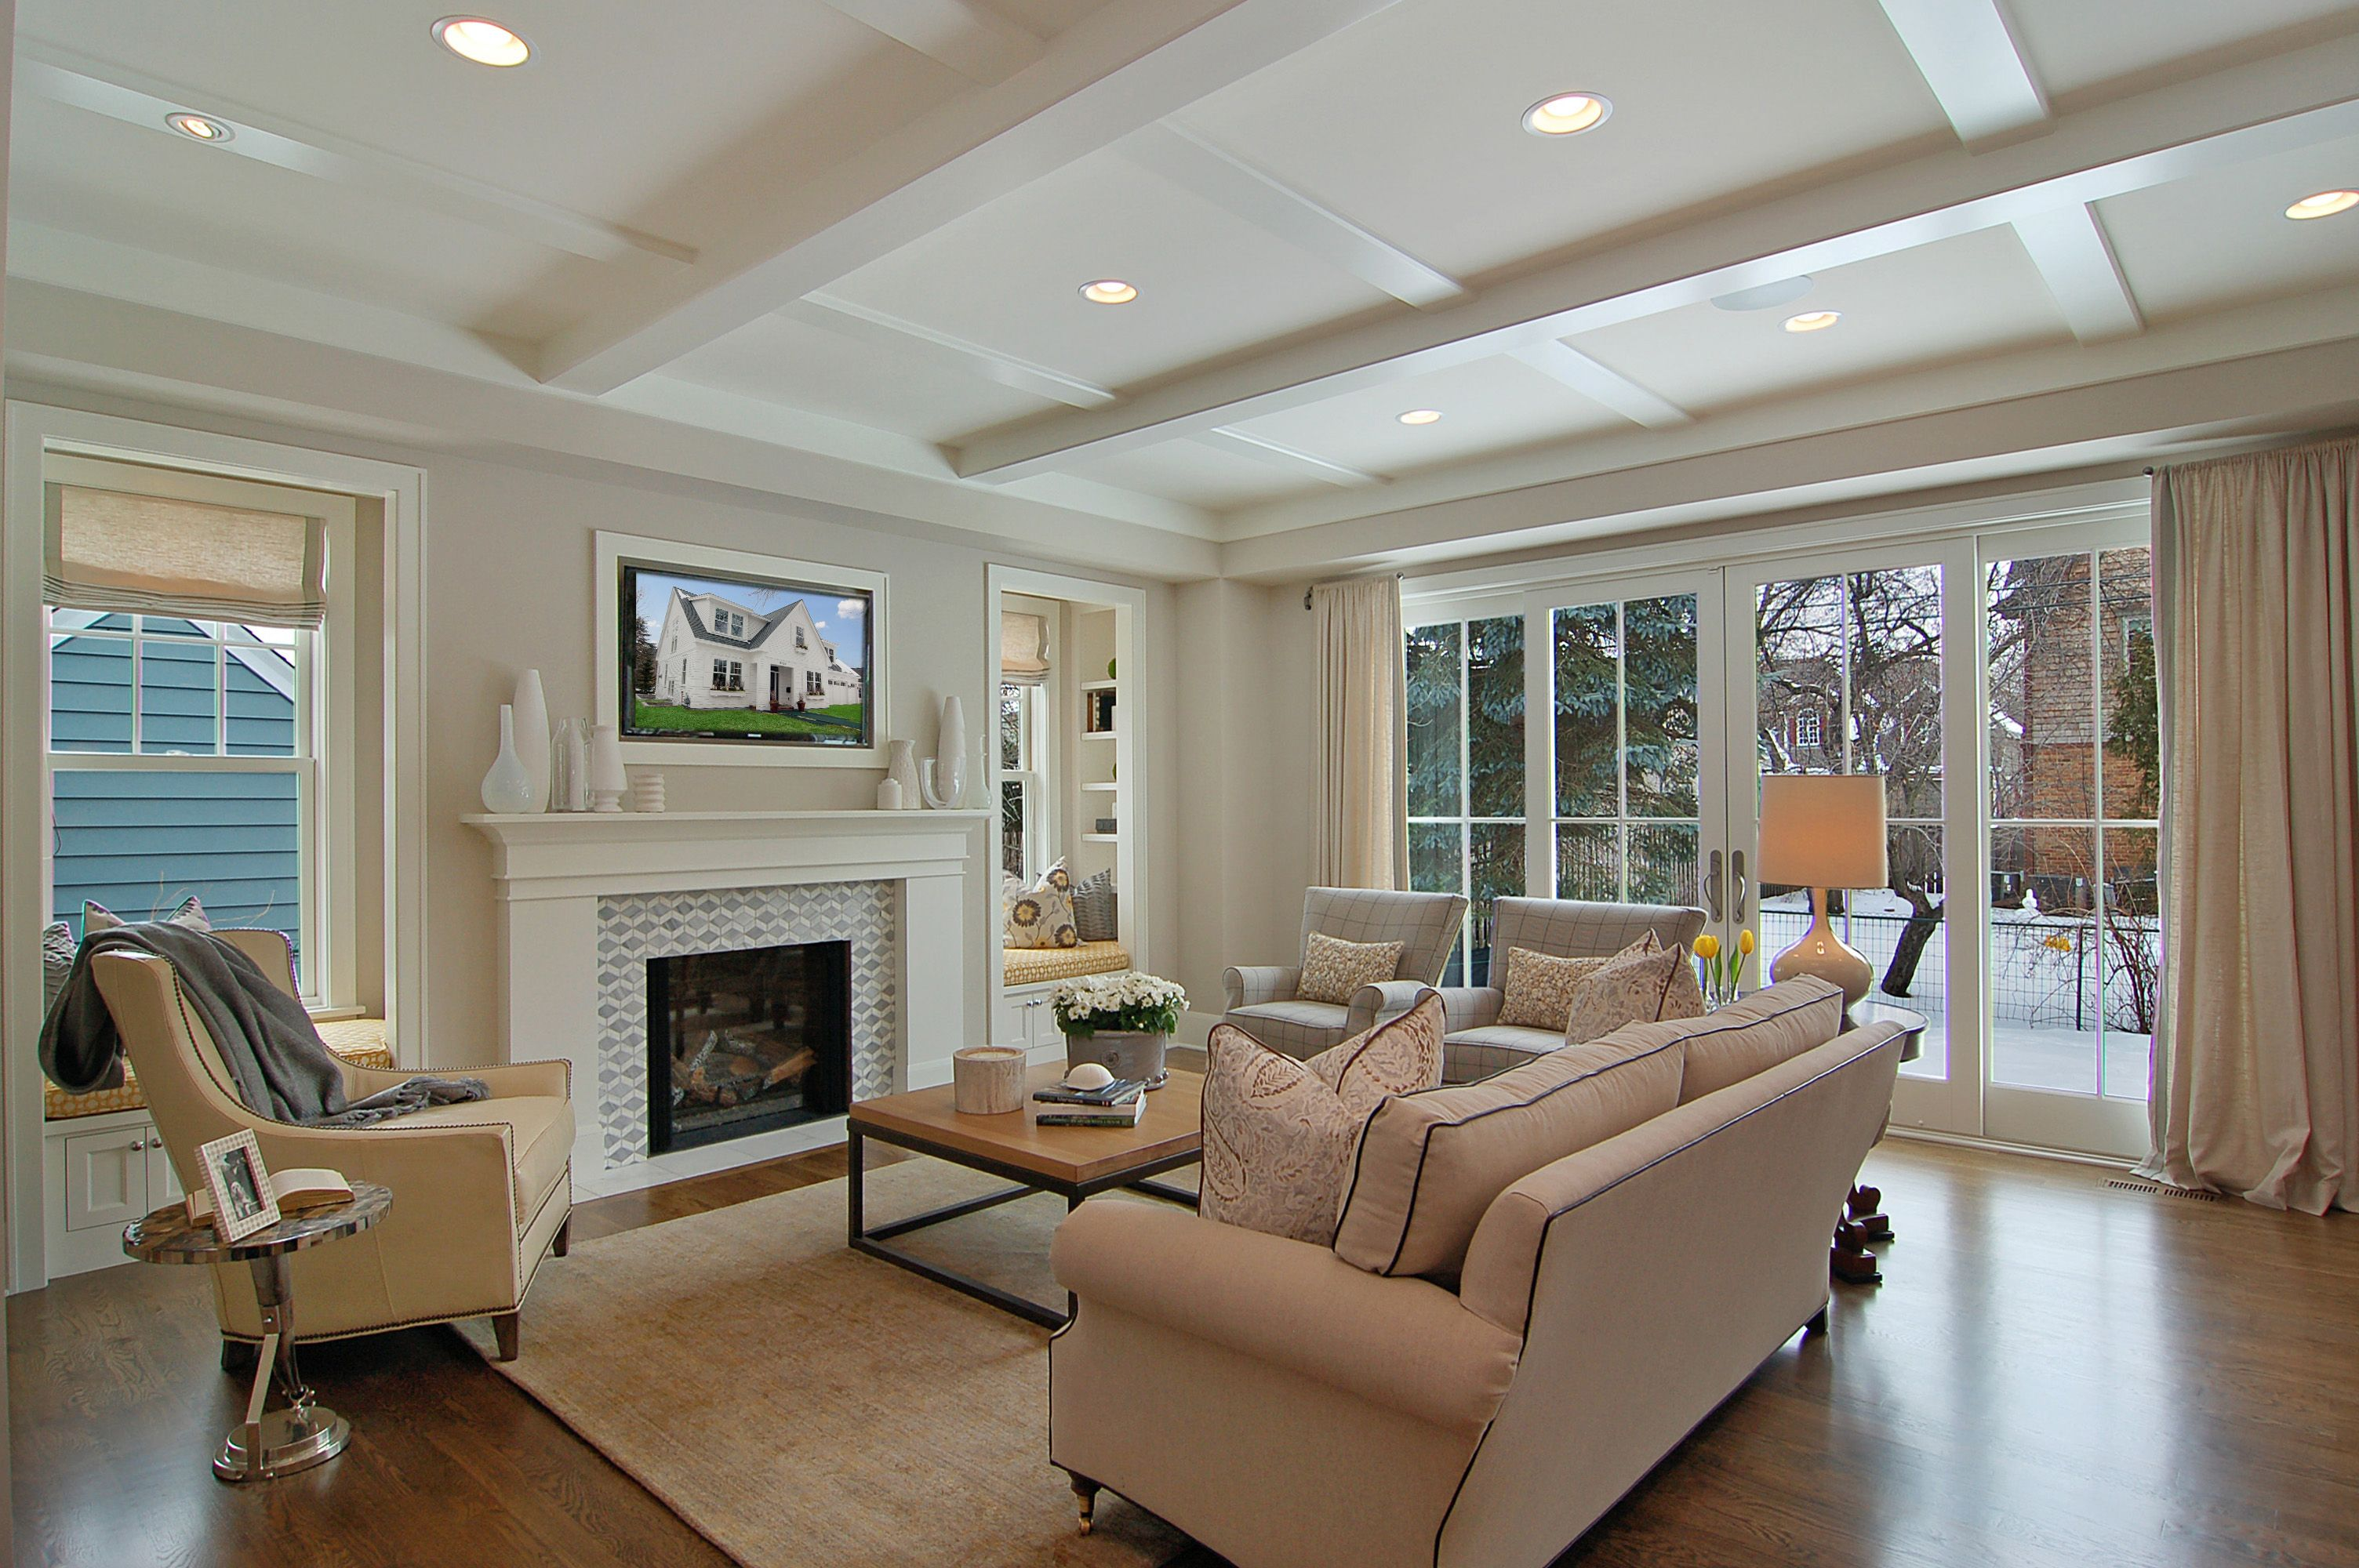 Living Room Vs Family Room What Is The Difference Room Layout